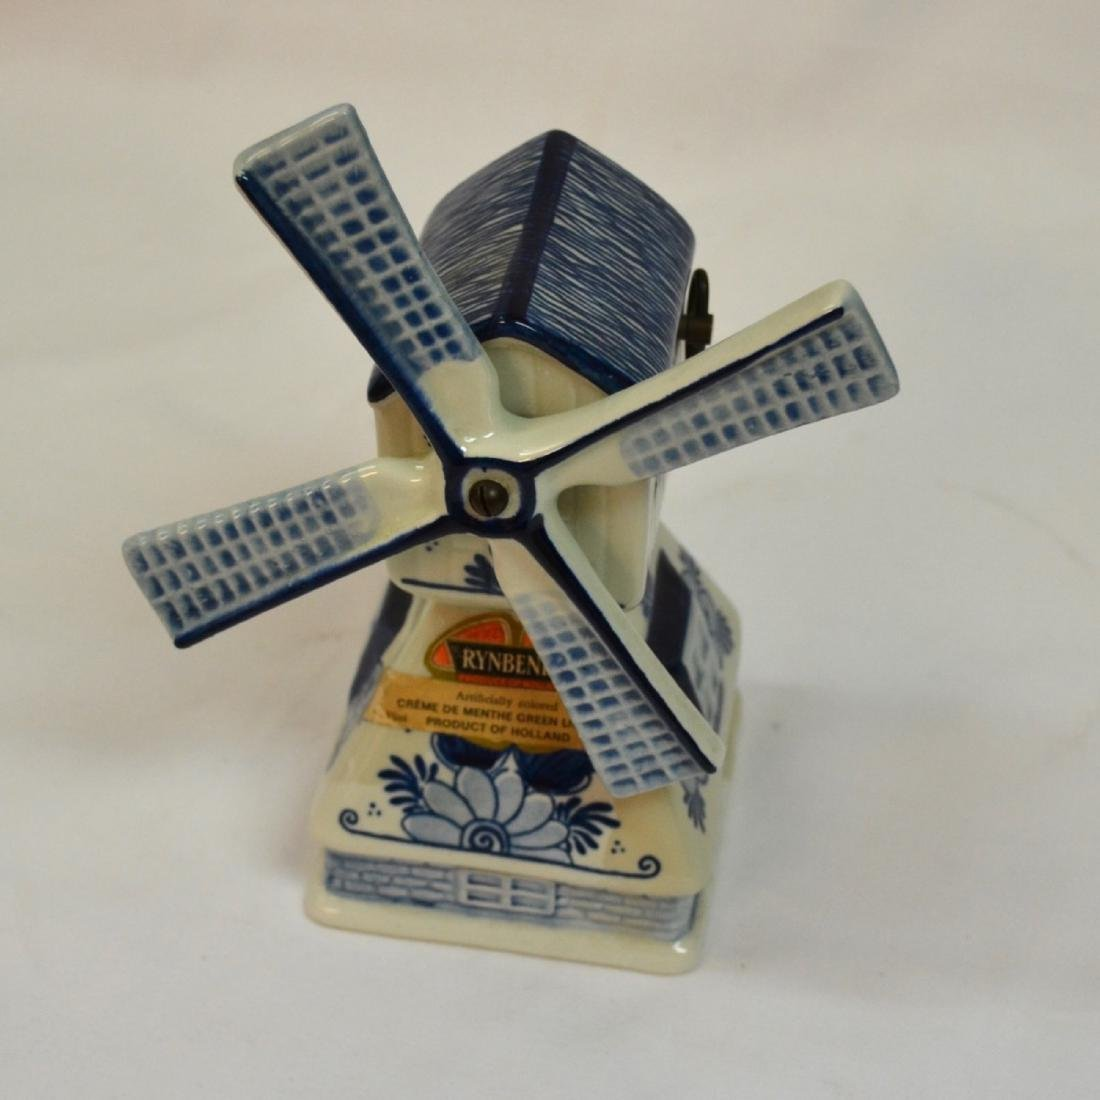 RYNBENDE WINDMILL ANND 1463 - DELFT BLUE - MADE IN - 5